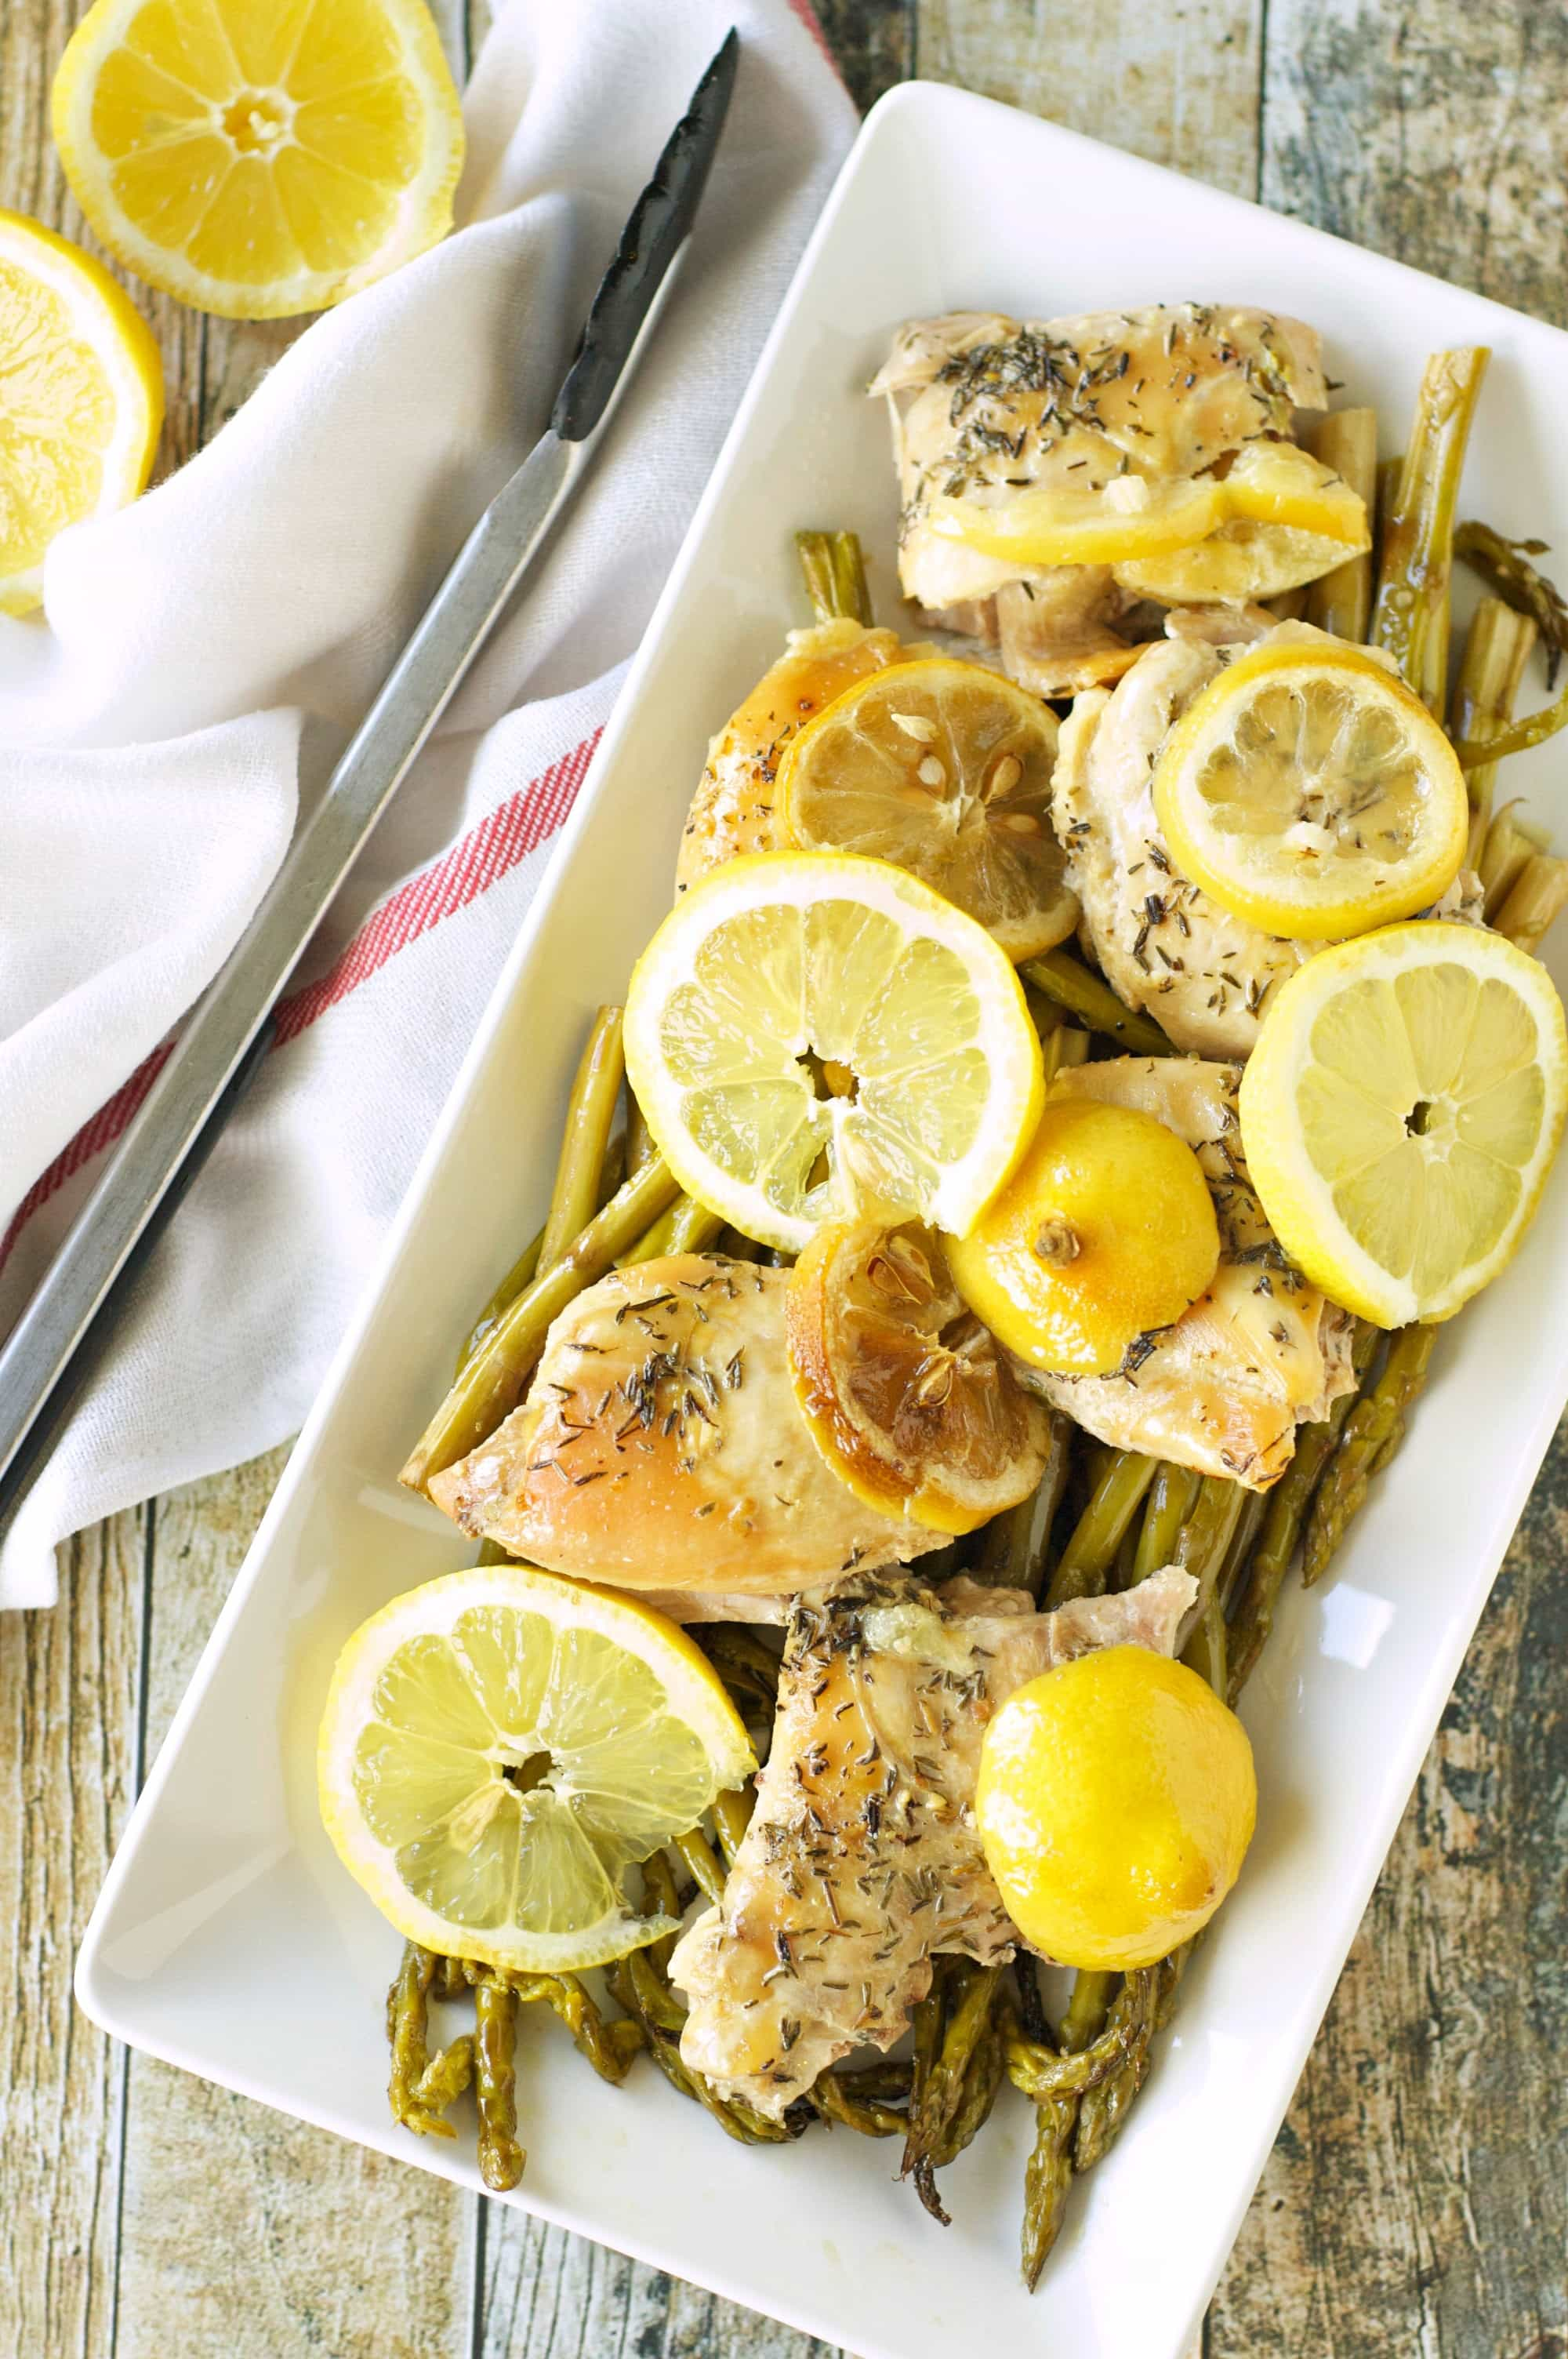 Slow Cooker Lemon Pepper Chicken with Asparagus